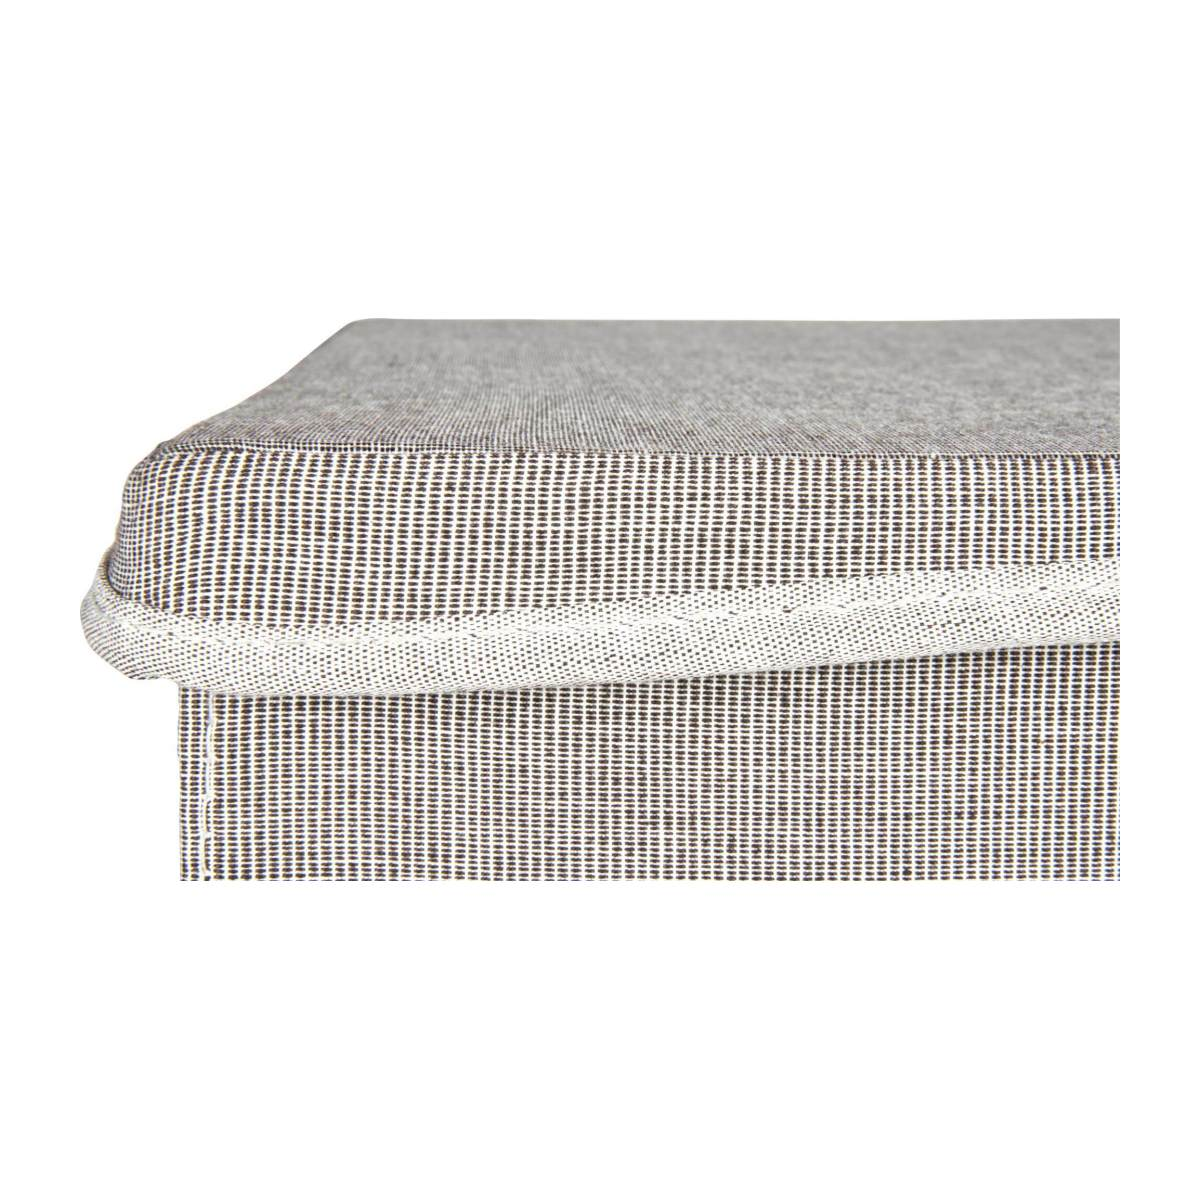 Large Storage basket, grey fabric and bamboo n°8